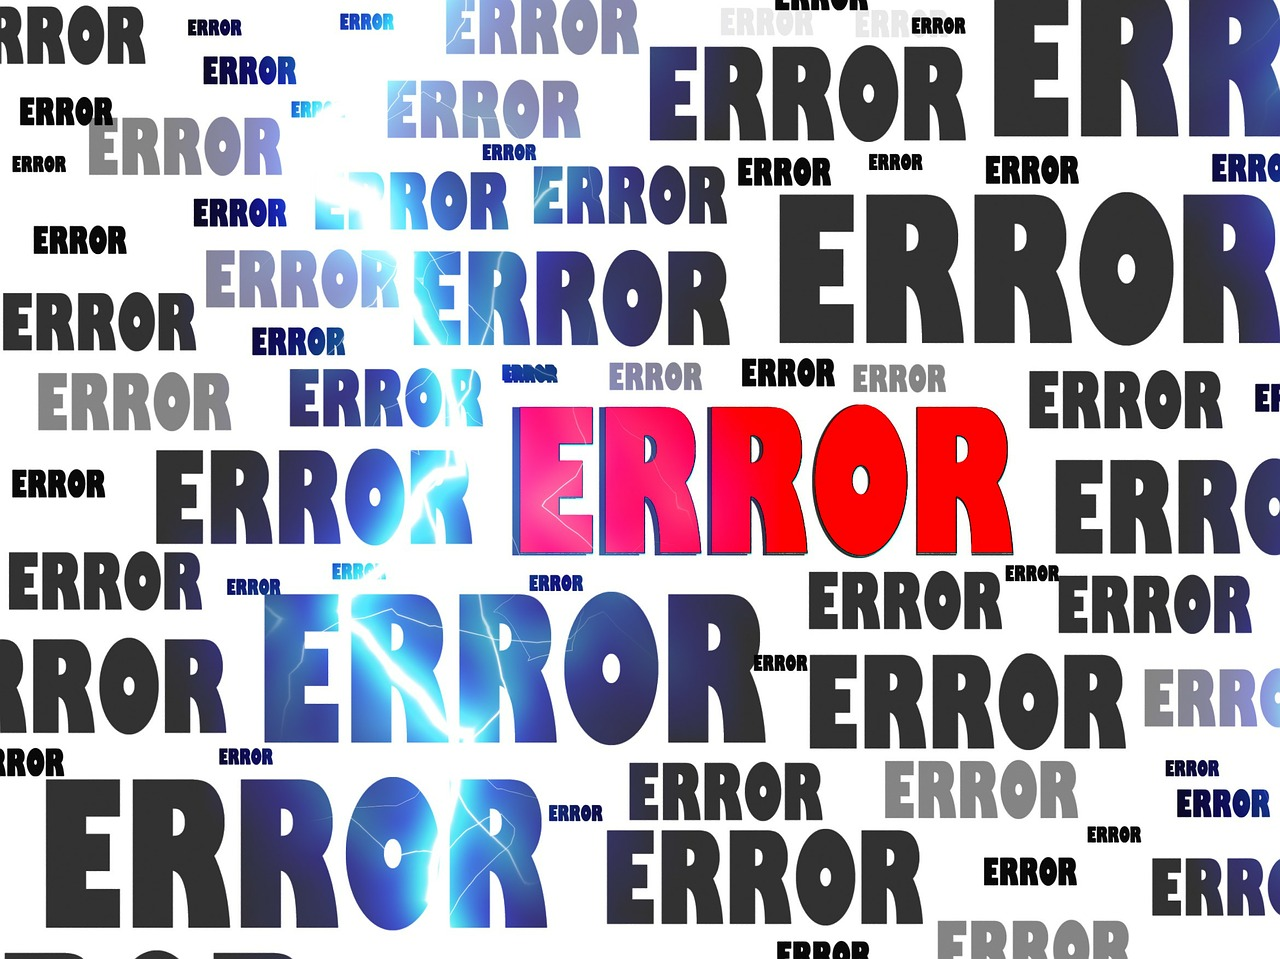 Mistakes and errors